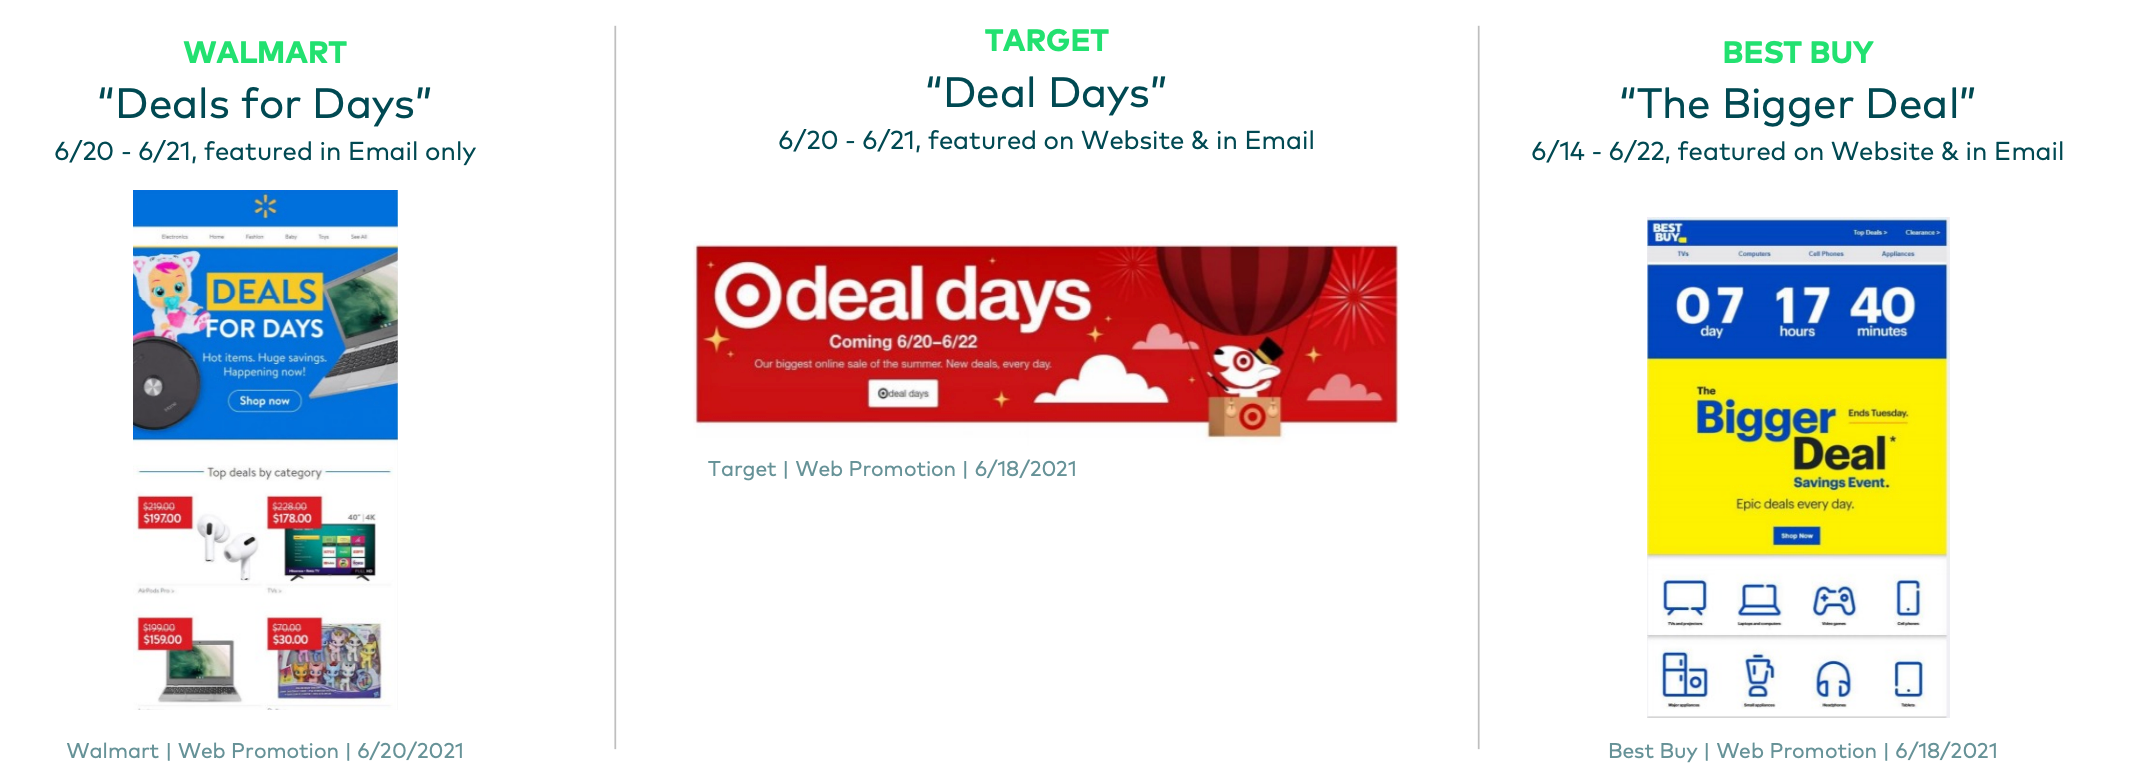 Amazon Prime Day 2021 Walmart, Target, and Best Buy run sales events to compete